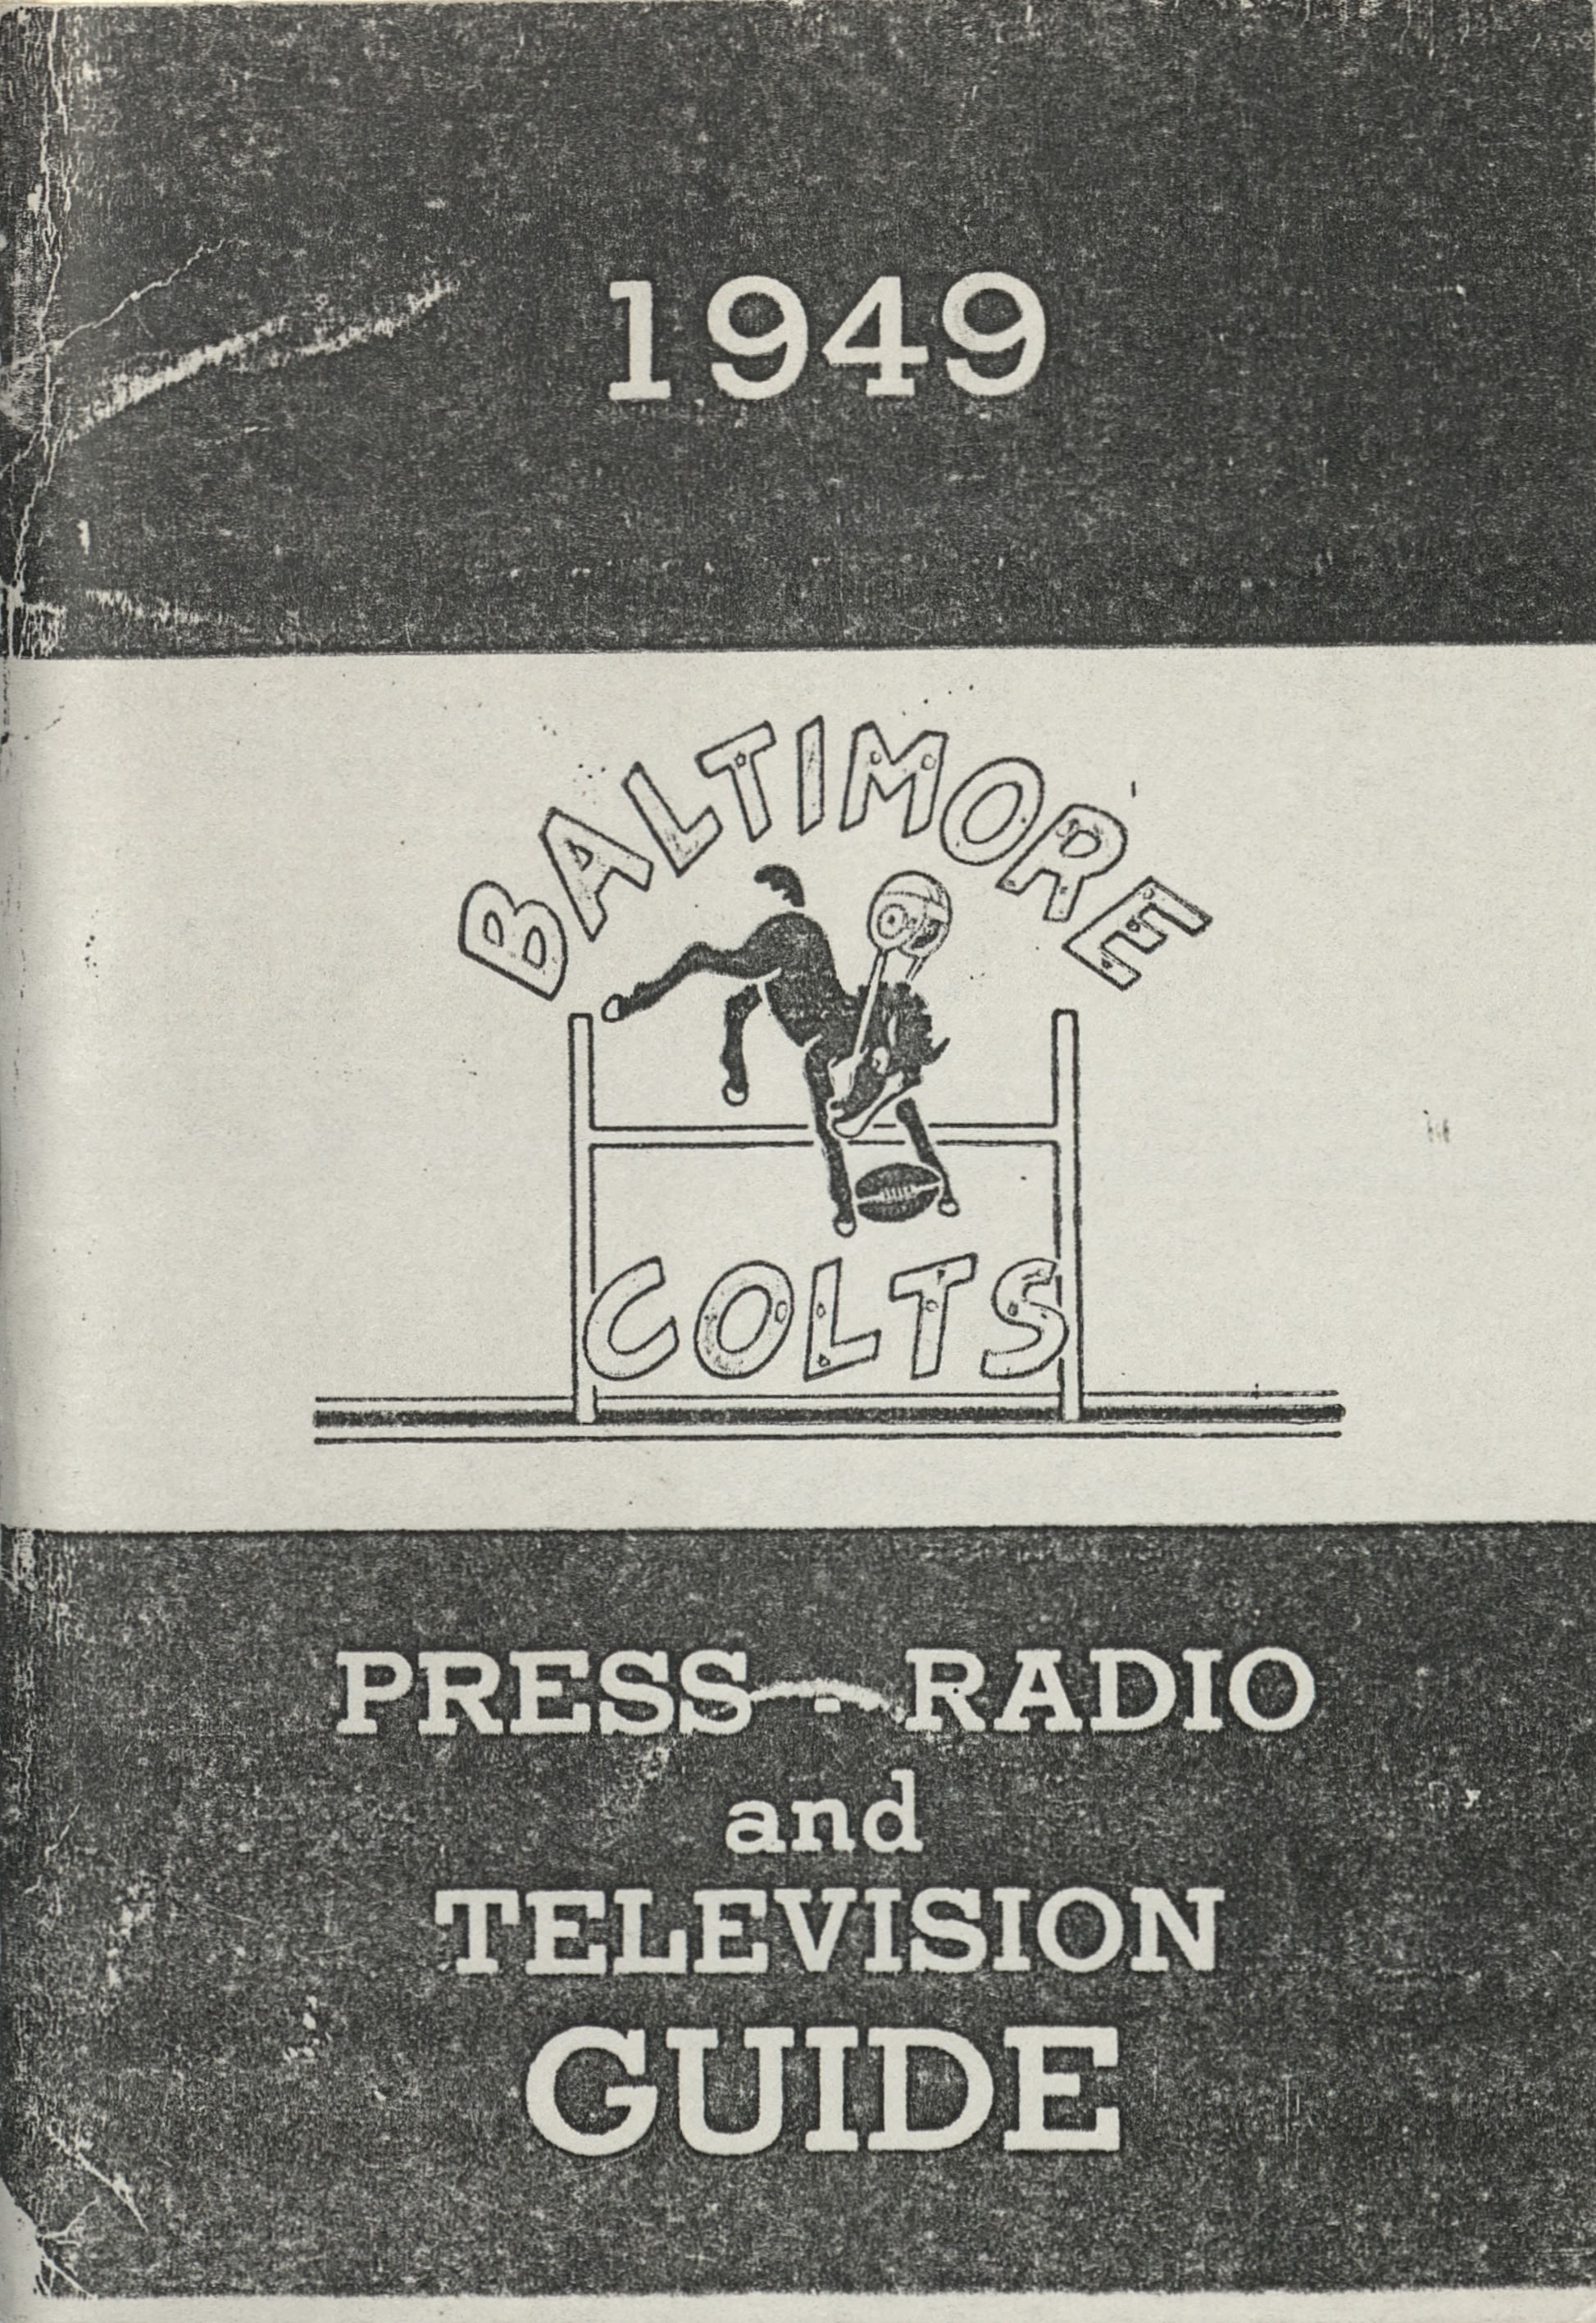 COLTS_1949_Cover